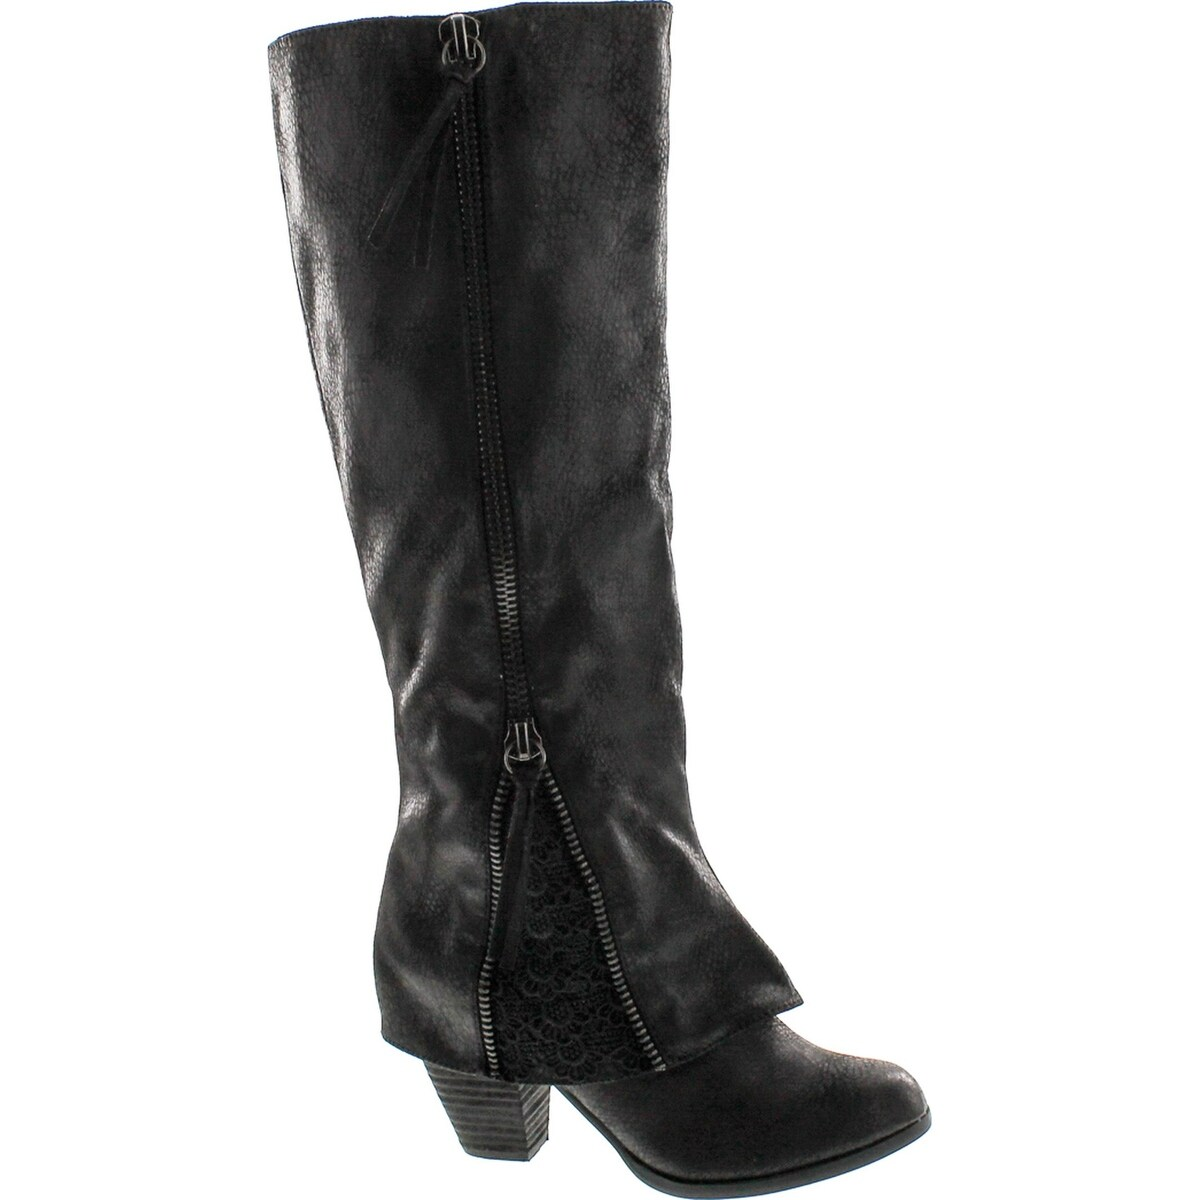 72d28cb7c6c7 Shop Not Rated Women s Sassy Classy Winter Boot - Black - Free ...